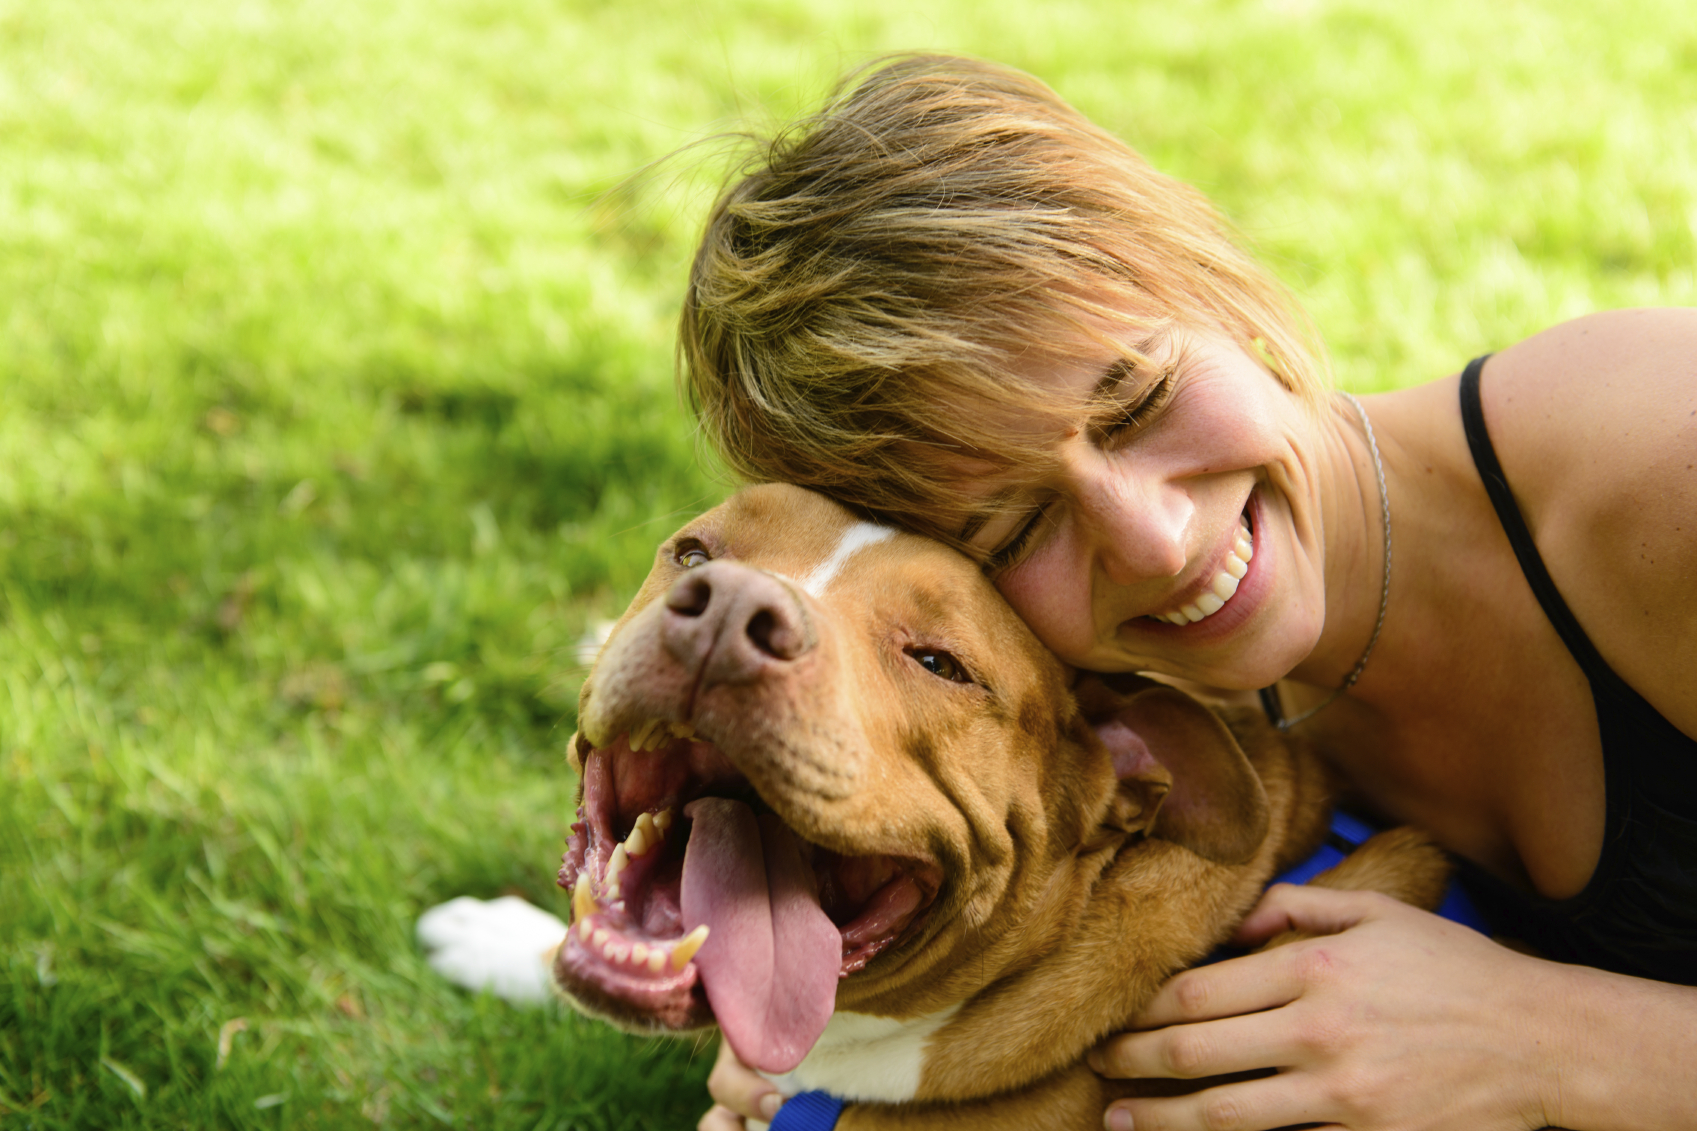 7 Grieving Remedies for Coping with Pet Loss